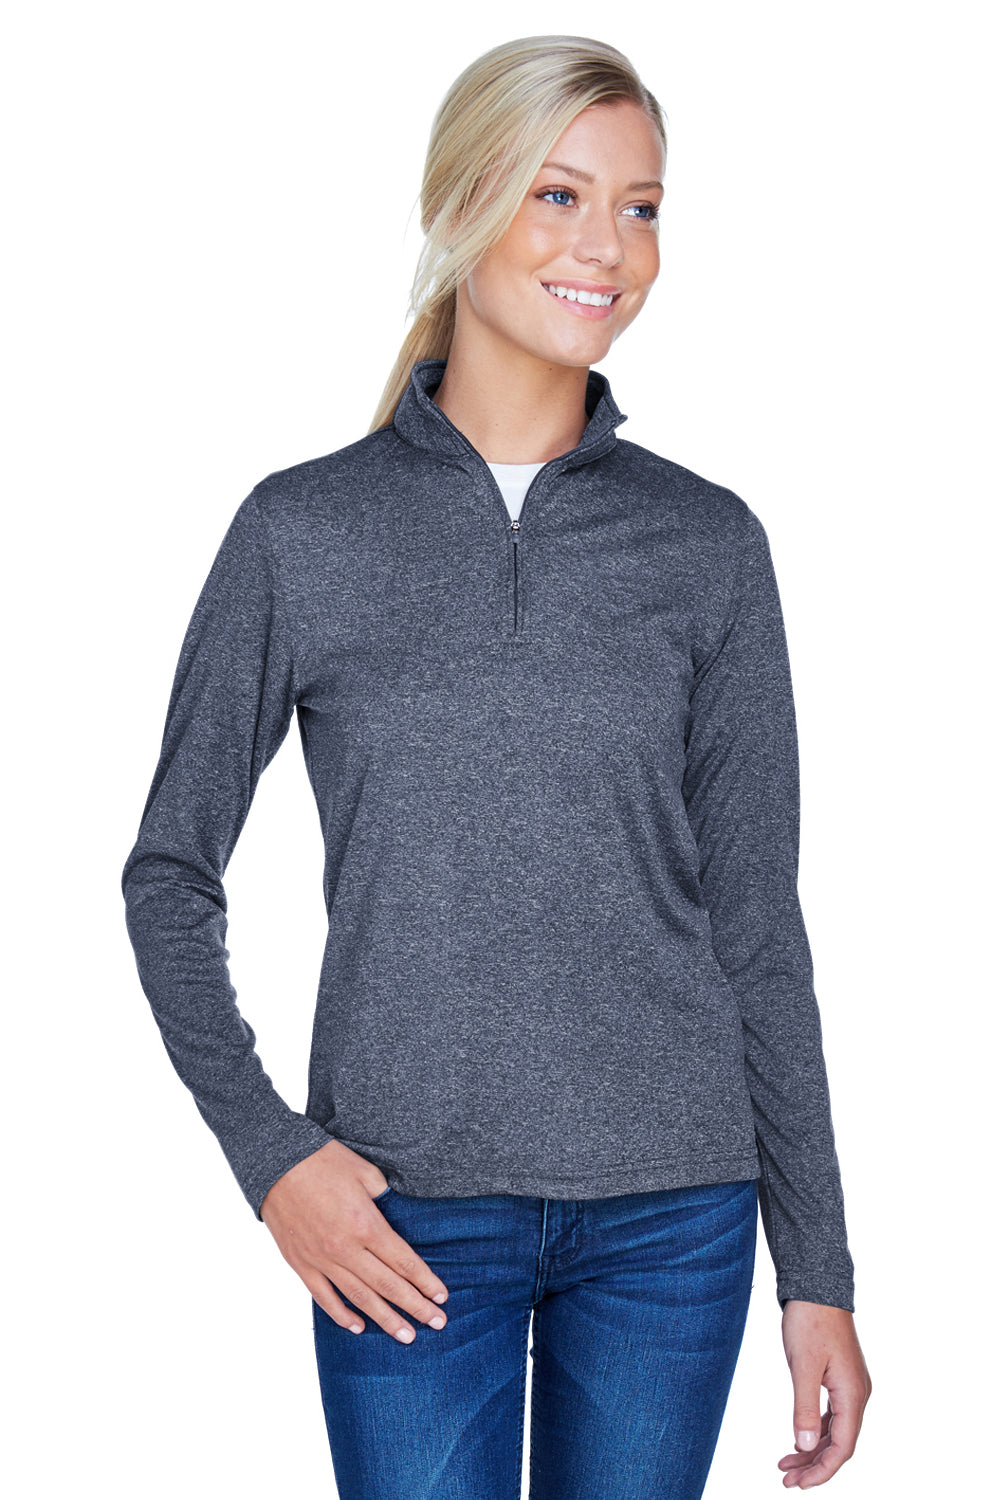 UltraClub 8618W Womens Heather Cool & Dry Performance Moisture Wicking 1/4 Zip Sweatshirt Navy Blue Front